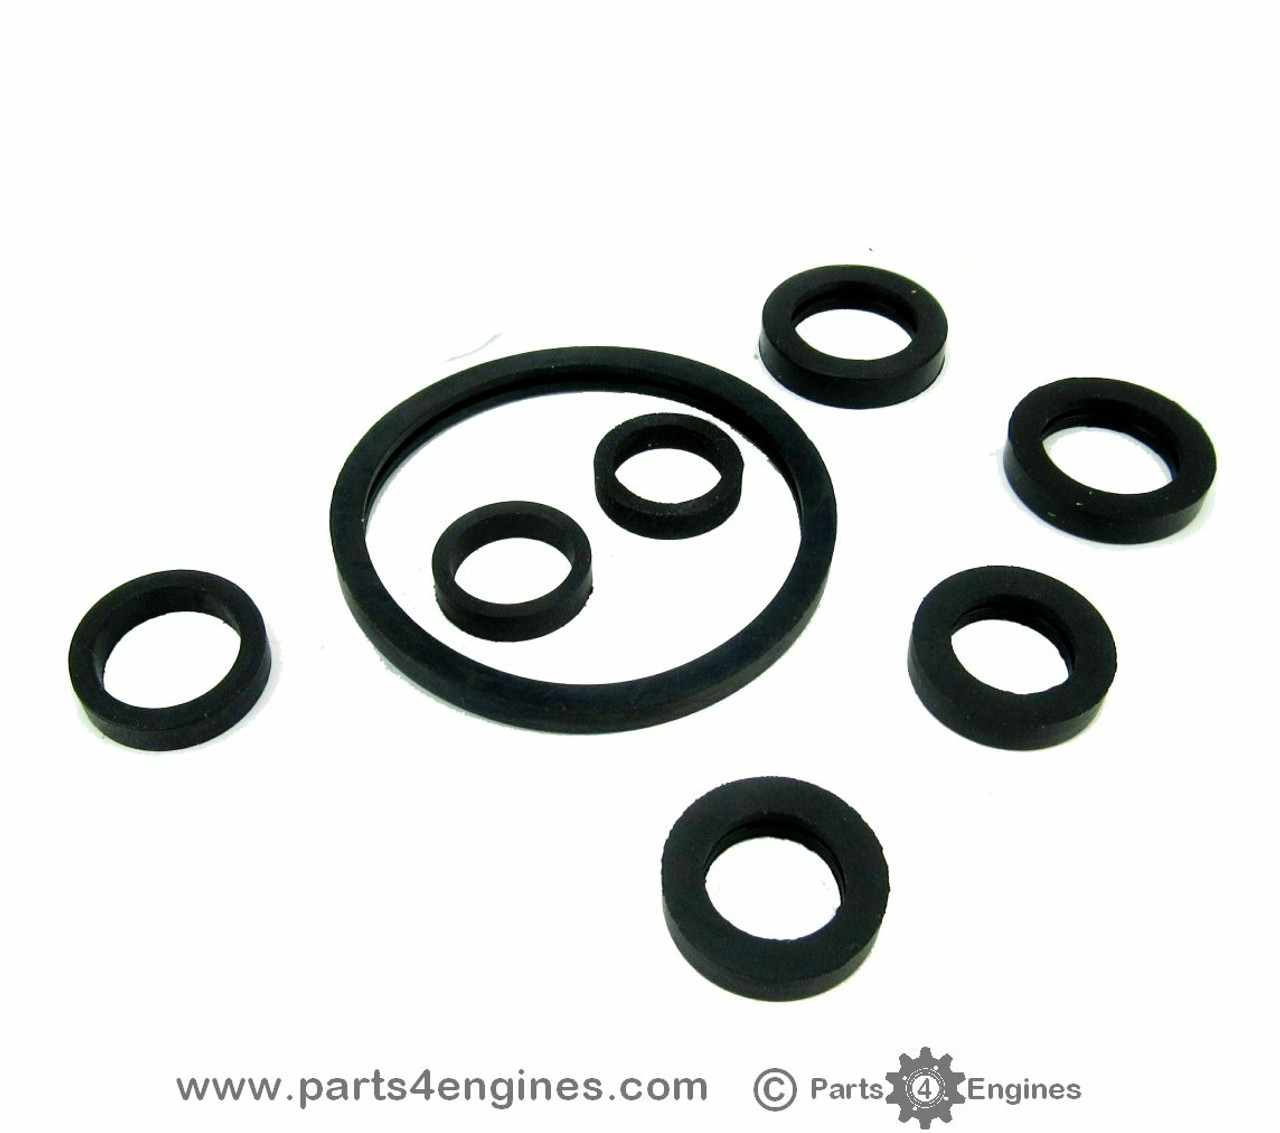 Volvo Penta 2001 water pipe seal & fuel washer kit - Parts4Engines.com